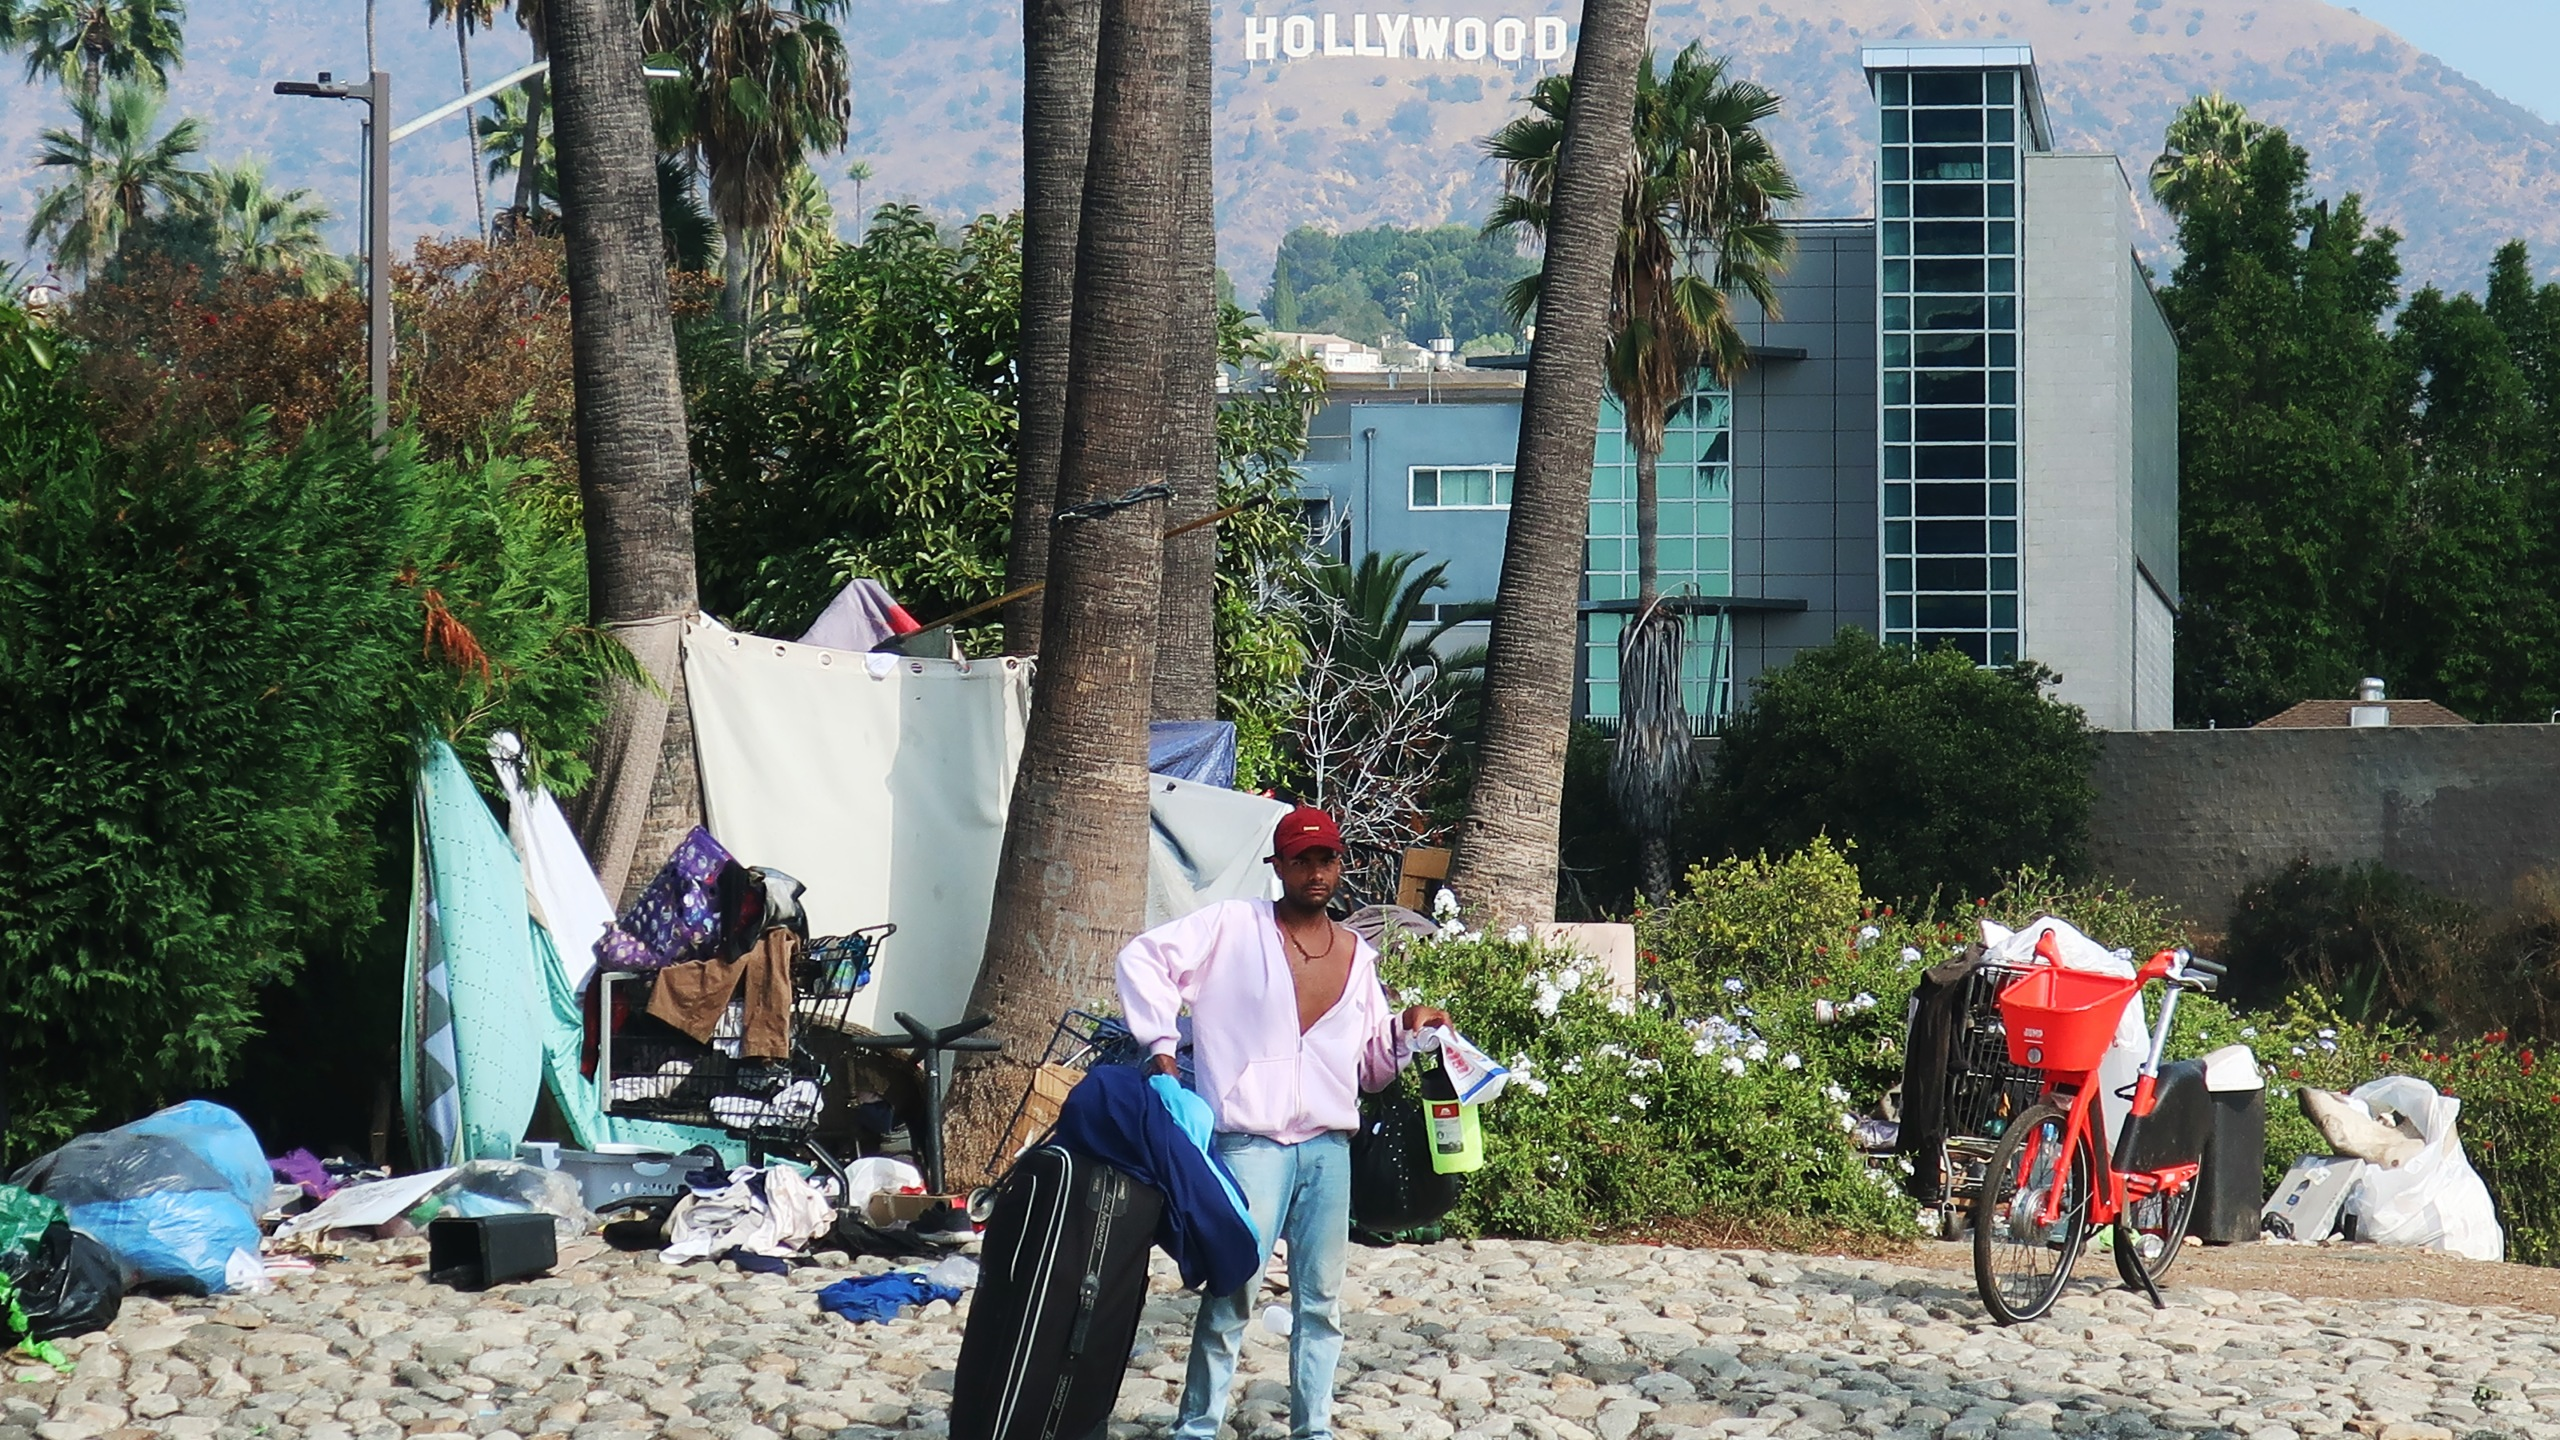 A man stands in front of a homeless encampment in Los Angeles, with the Hollywood sign in the background on Sept. 23, 2019. (Credit: Mario Tama/Getty Images)